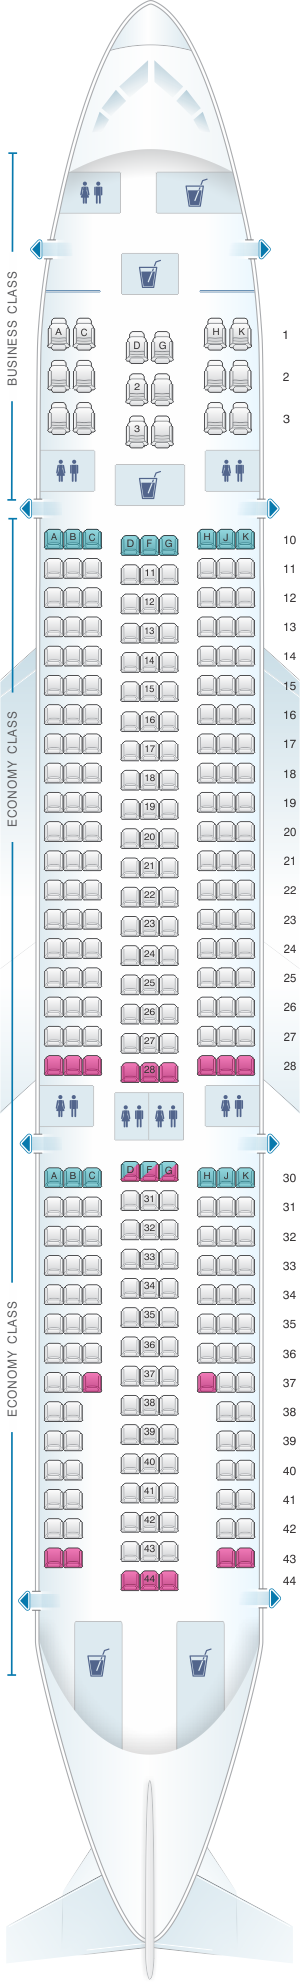 Seat map for Hi Fly Airbus A330 200 306pax